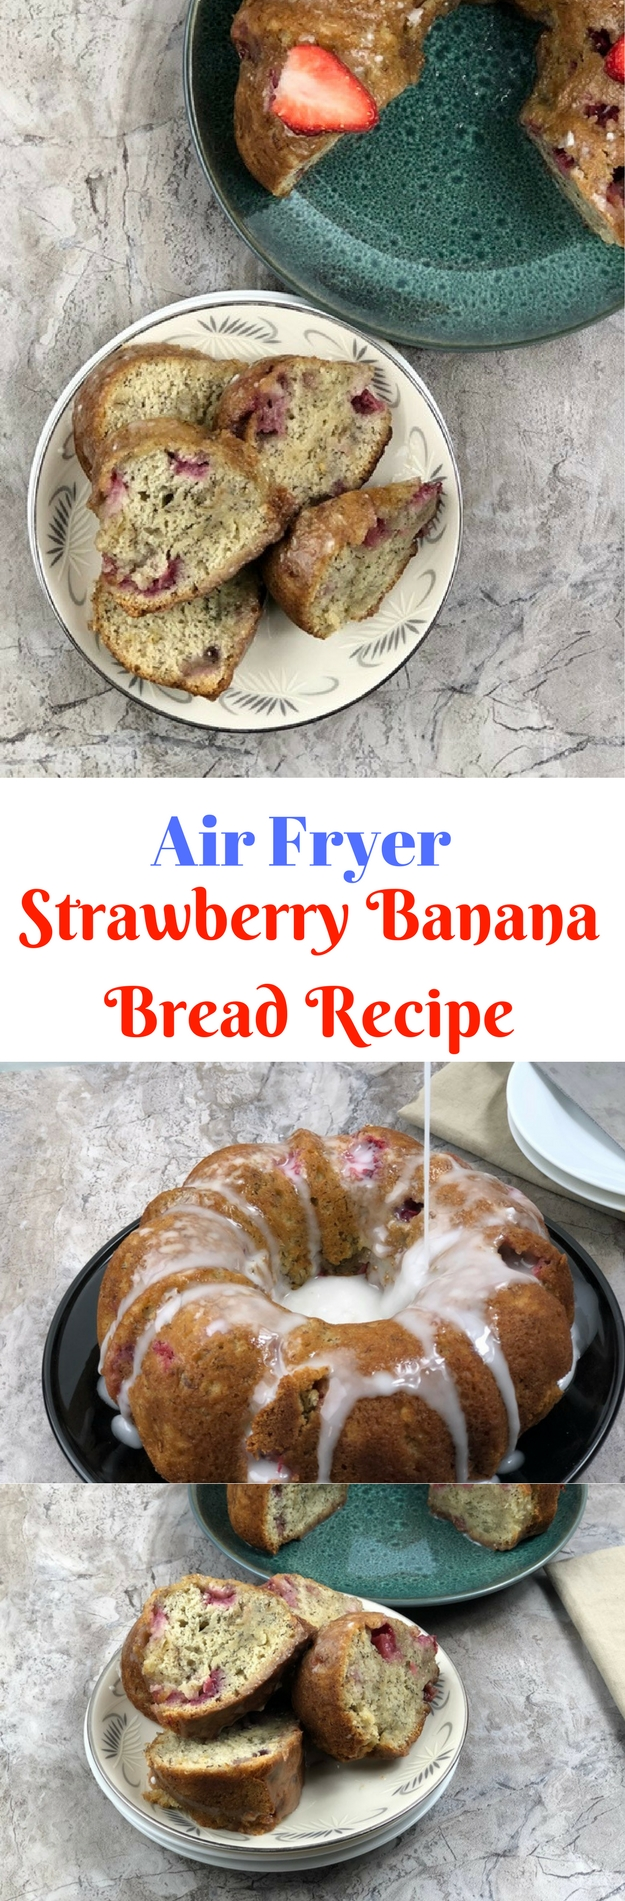 Air Fryer Strawberry Banana Bread Recipe ⋆ by Pink